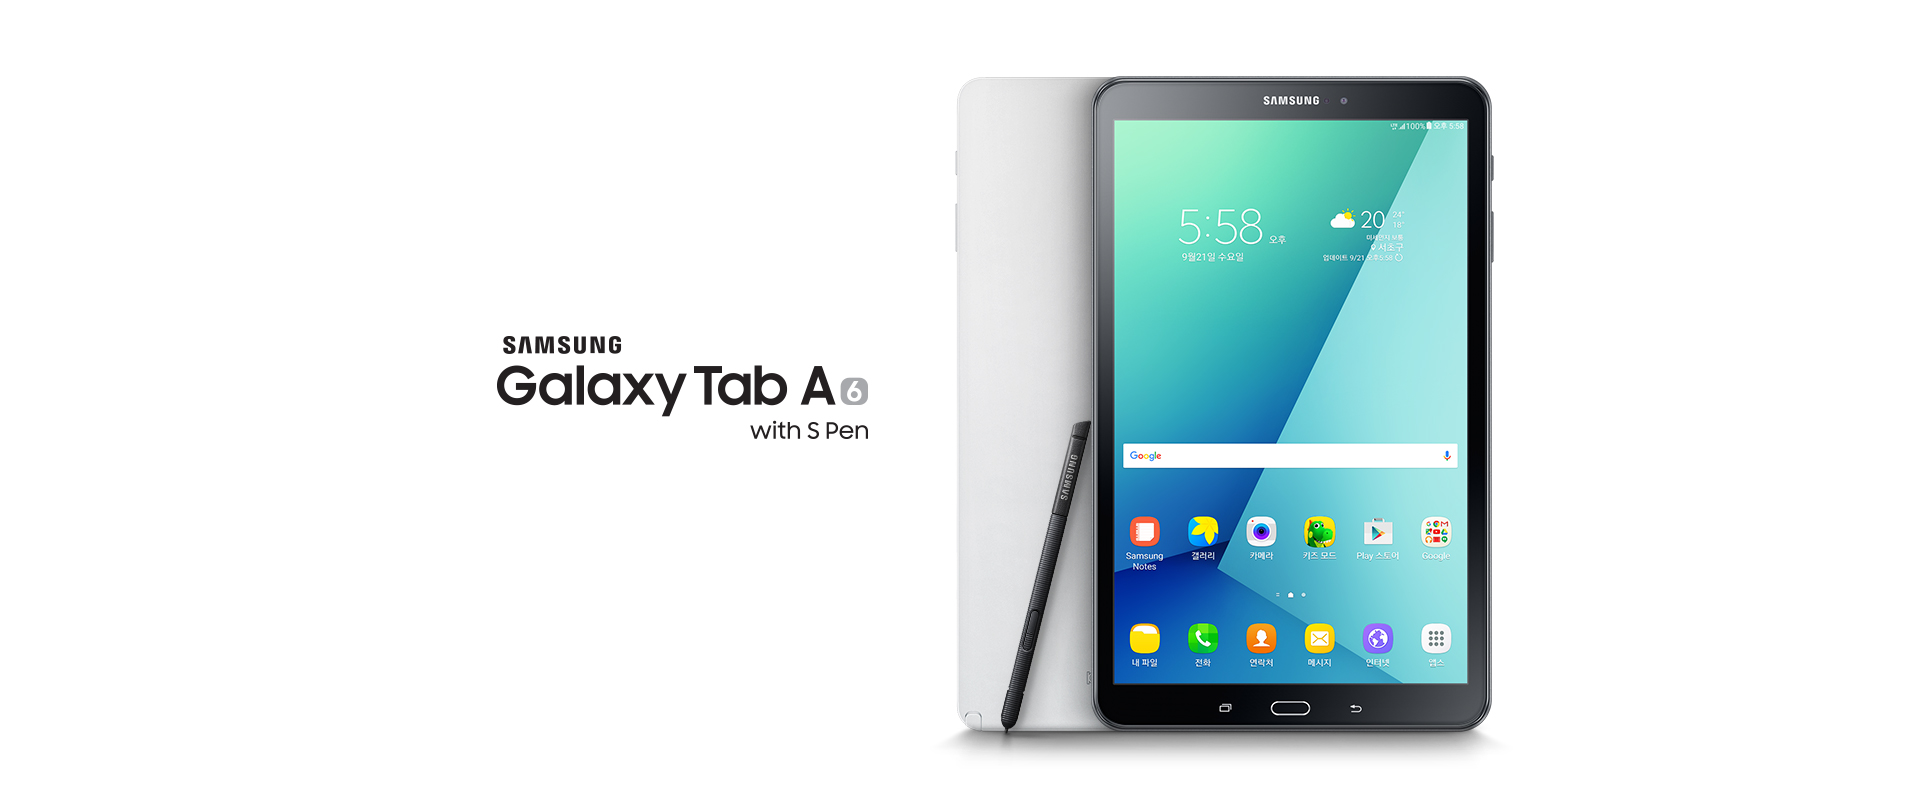 galaxy tab a 2016 with s pen officially launched   sammobile